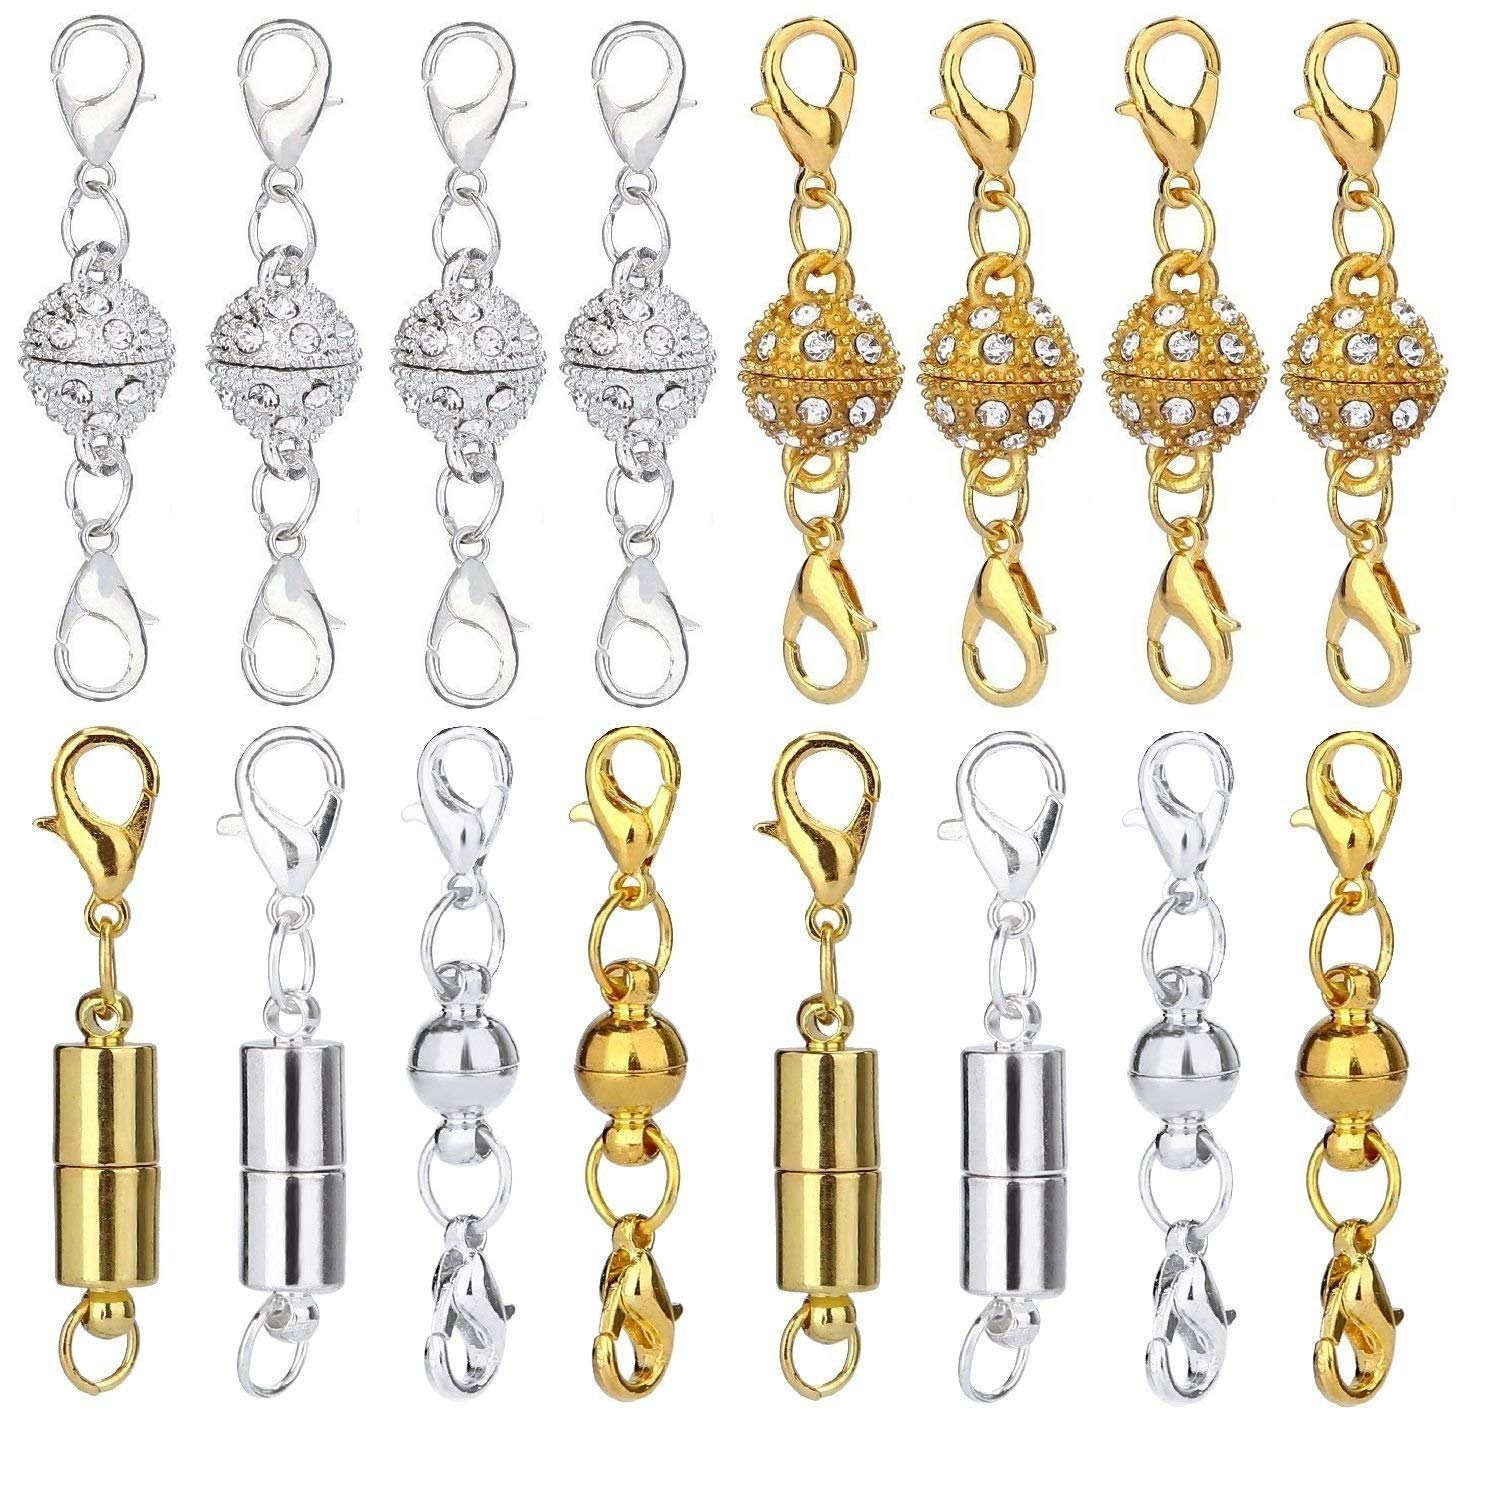 Cylindrical and Ball Tone Lobster Clasp Rhinestone Ball Style Silver and Gold Keadic 12 Pieces 3 Styles Gifts Magnetic Lobster Clasps with Spring Ring for Jewelry Necklace Bracelet